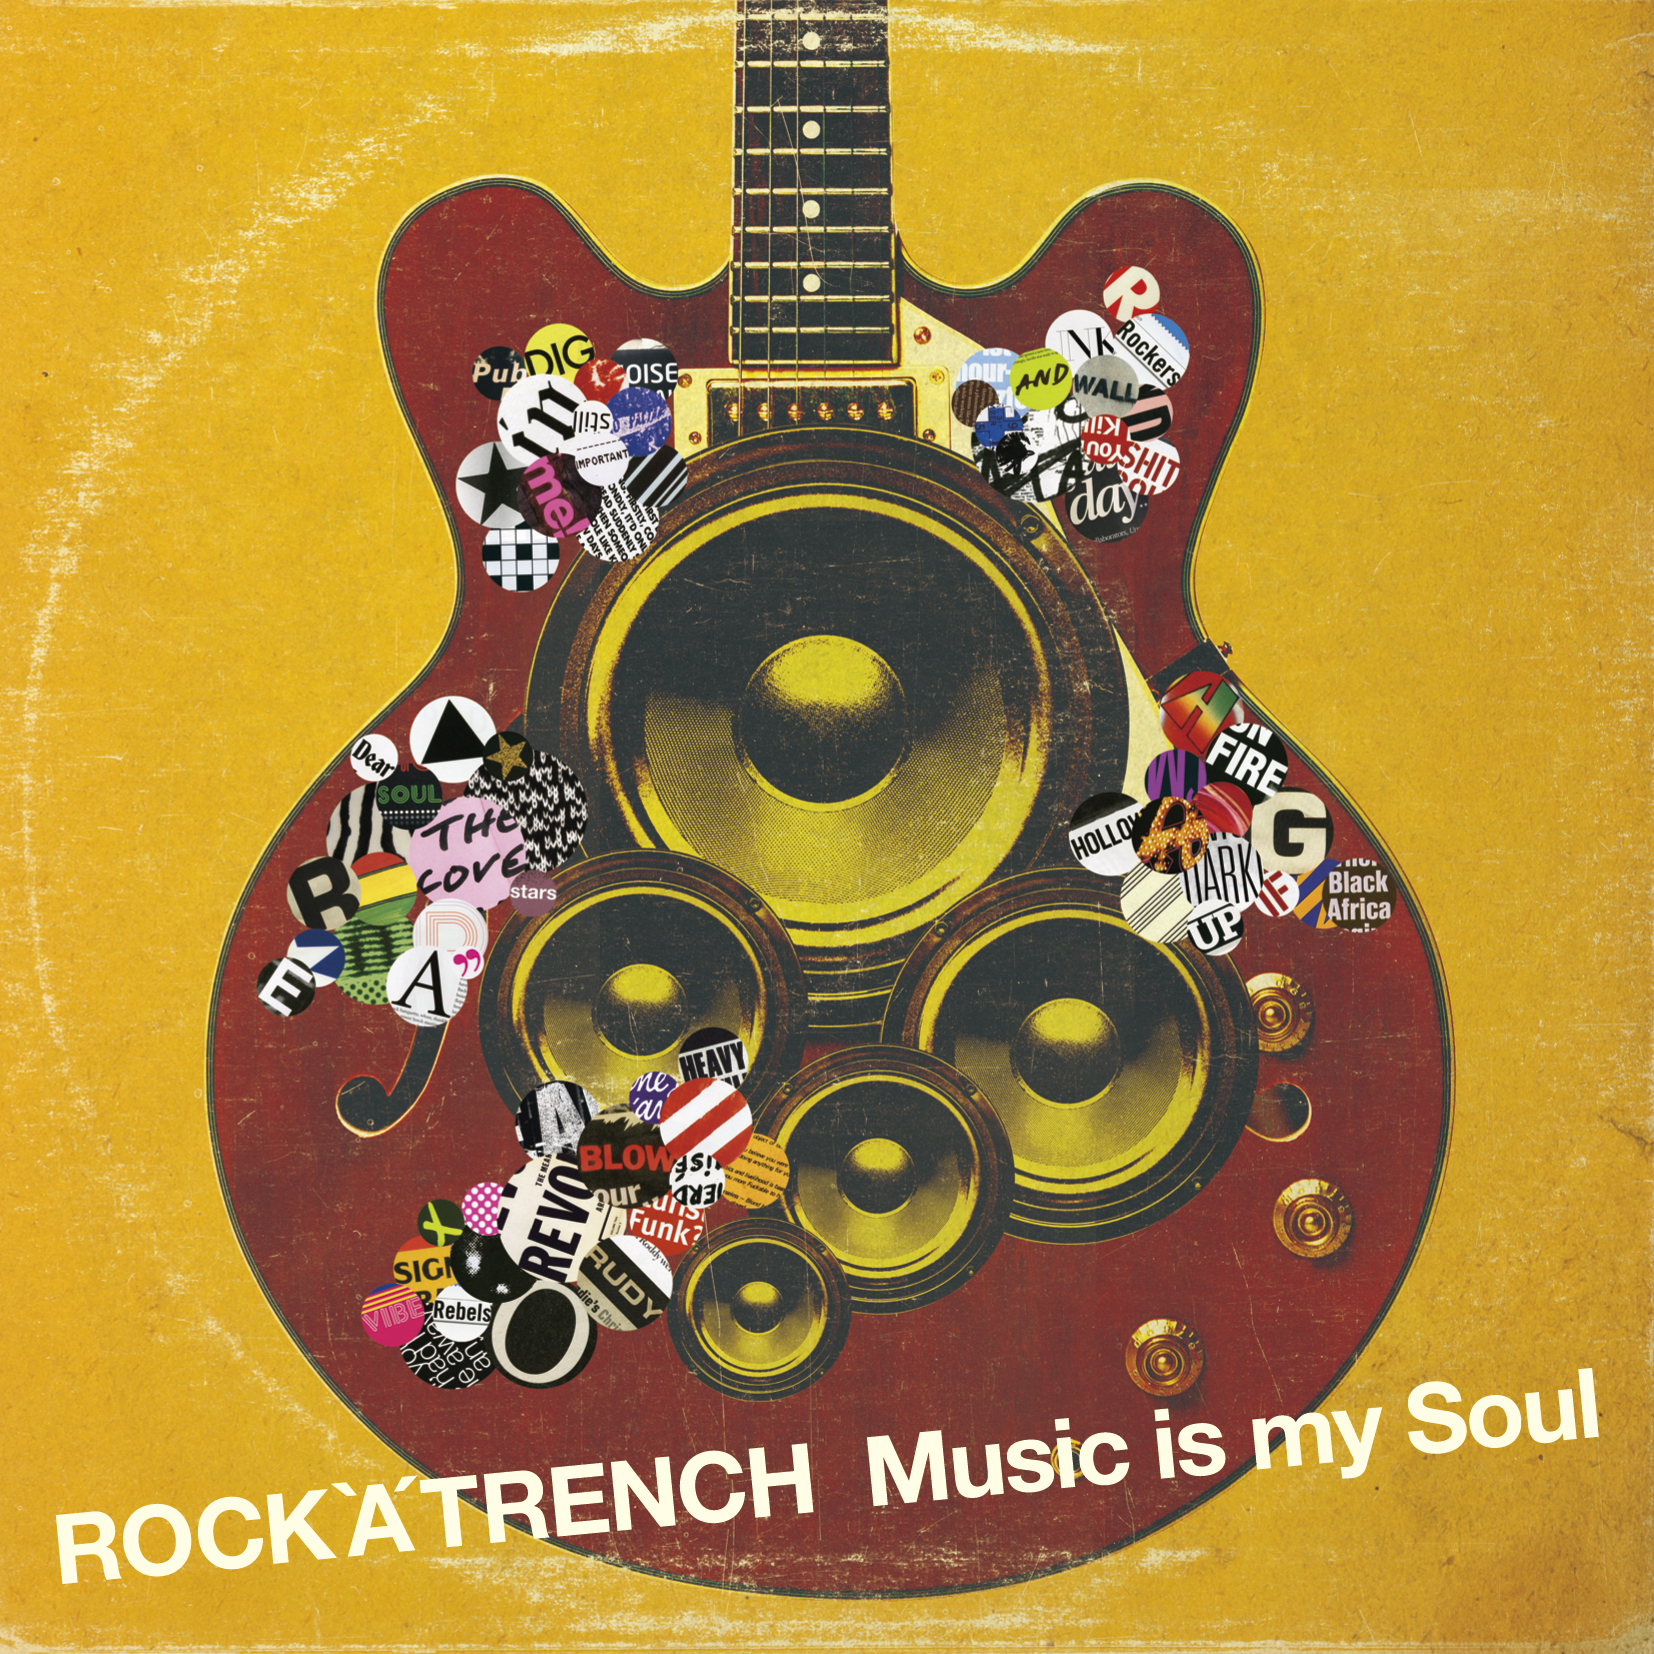 ROCK'A'TRENCH 「Music is my soul」